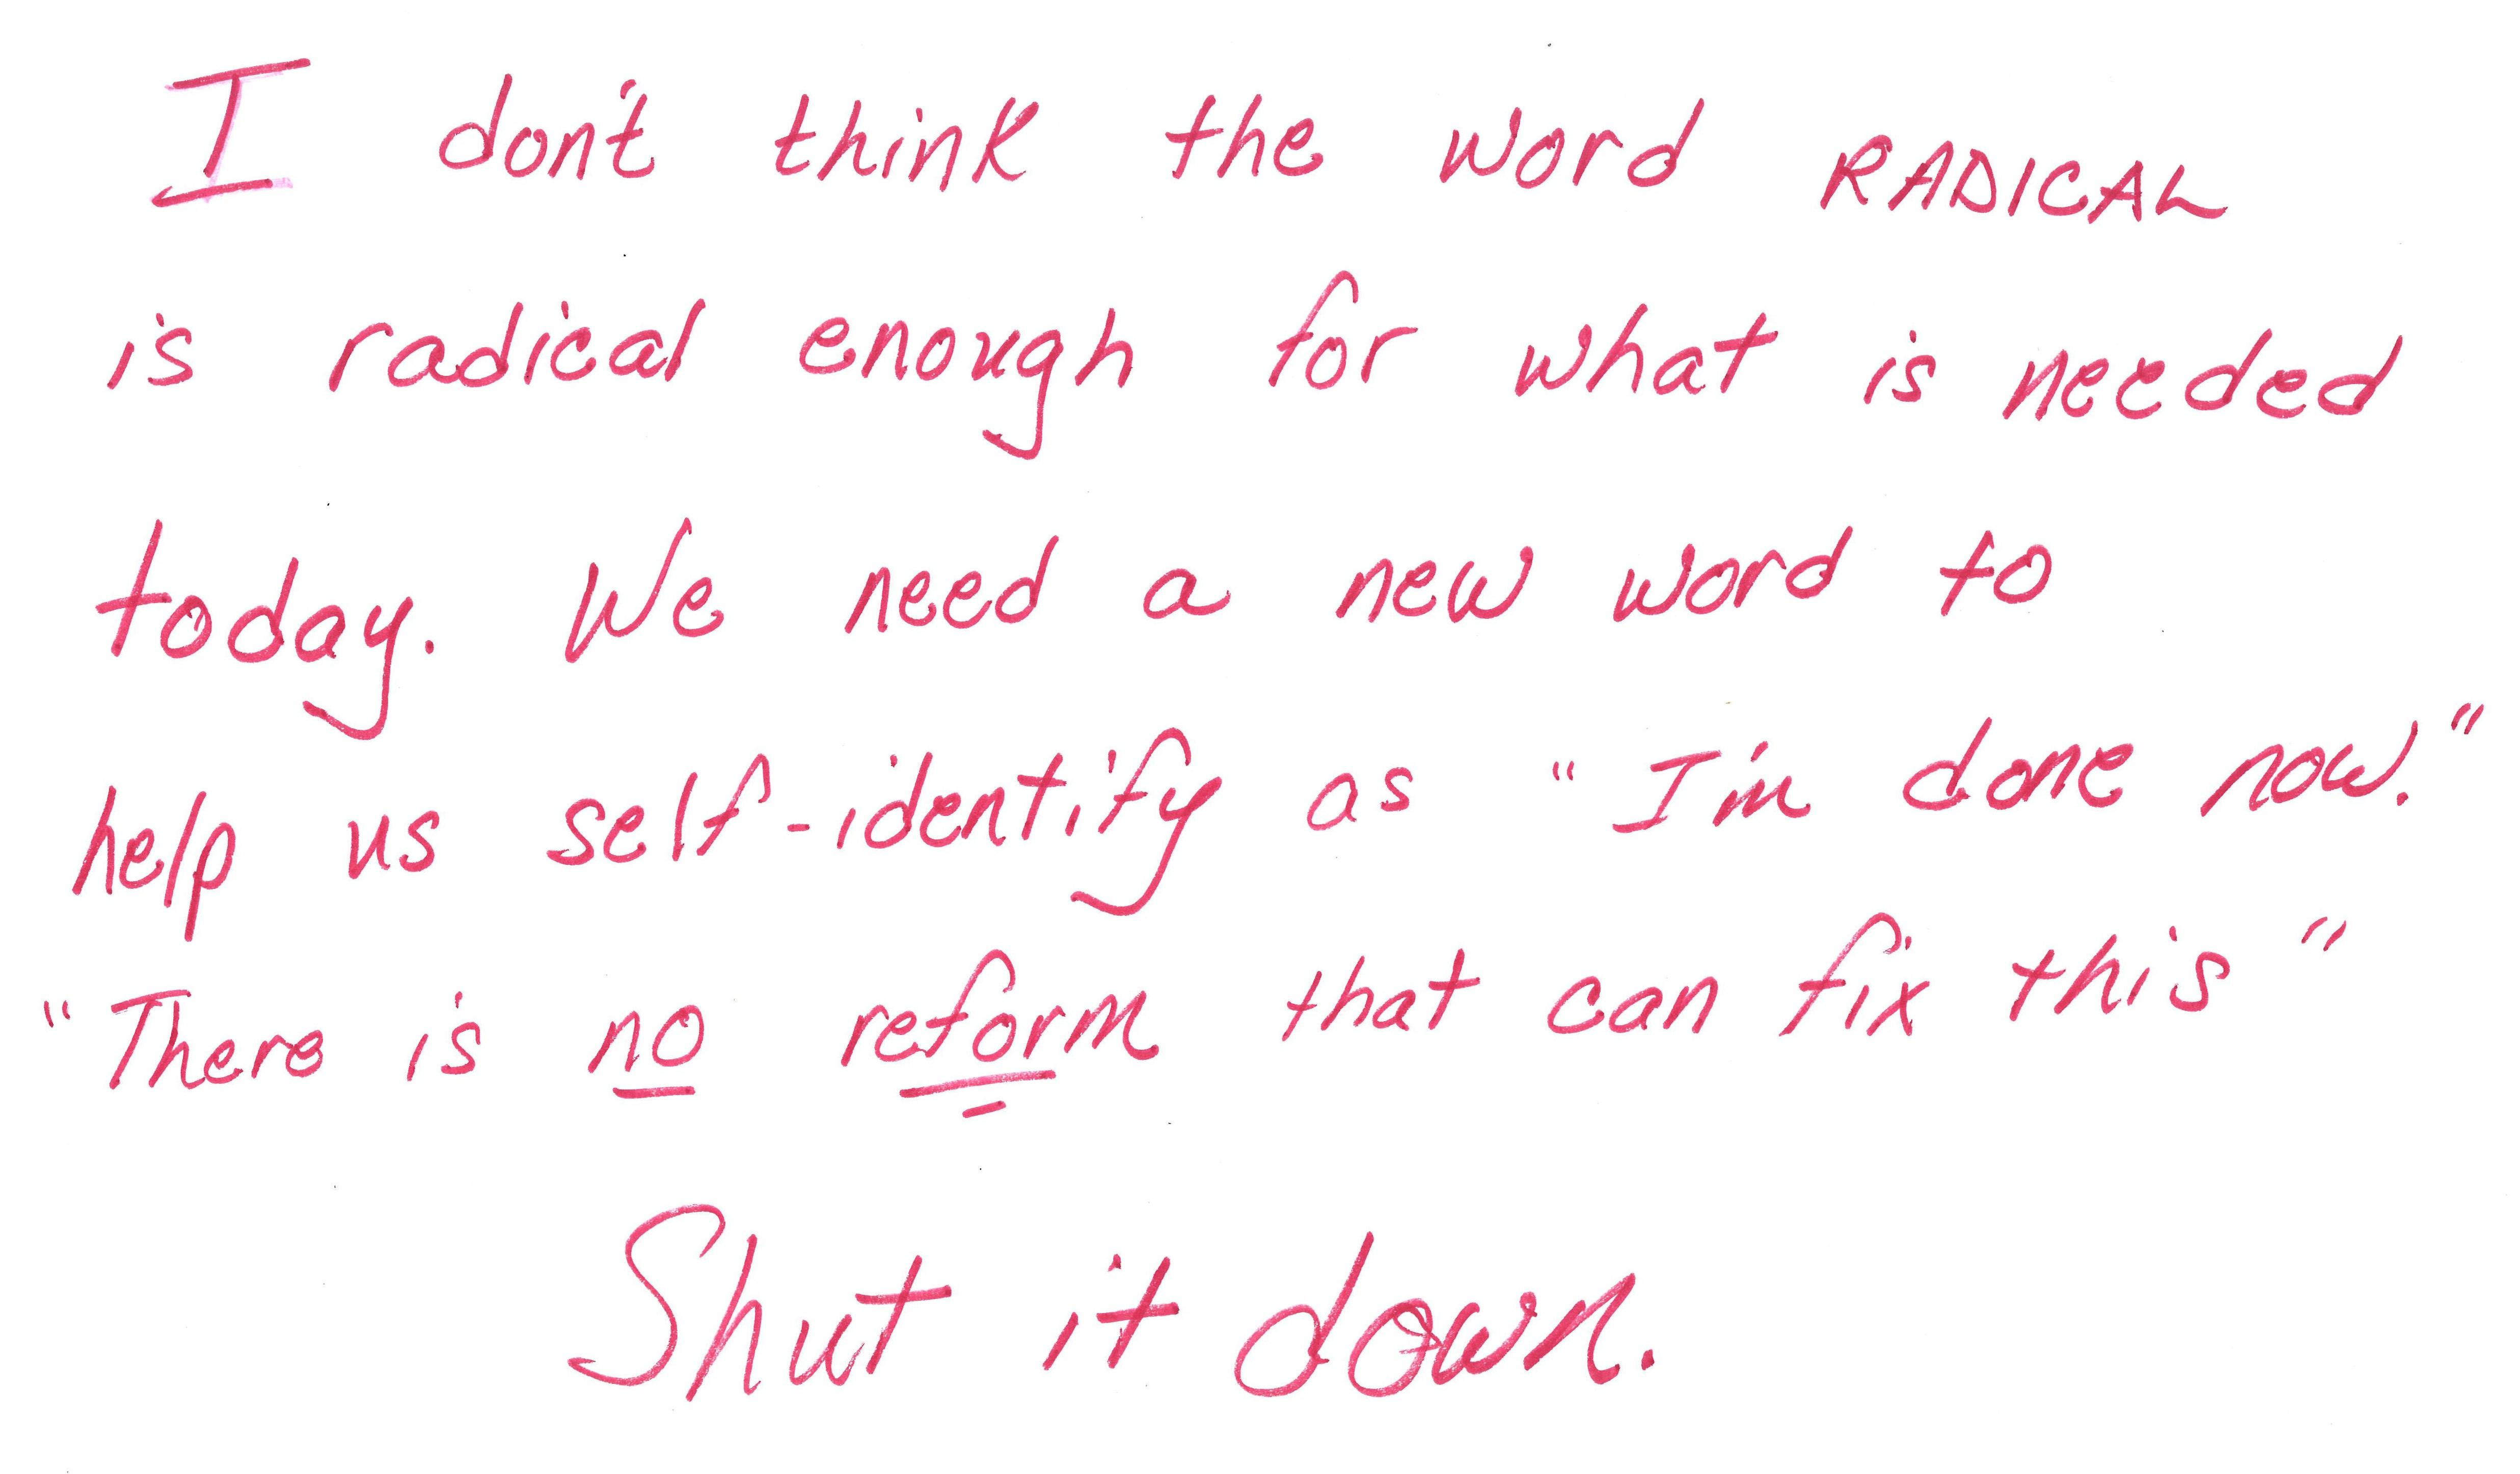 """A red handwritten block of text reads """"I don't think the word RADICAL is radical enough for what is needed today. We need a new word to help us self-identify as 'I'm done now.' 'There is no reform that can fix this' Shut it down."""""""